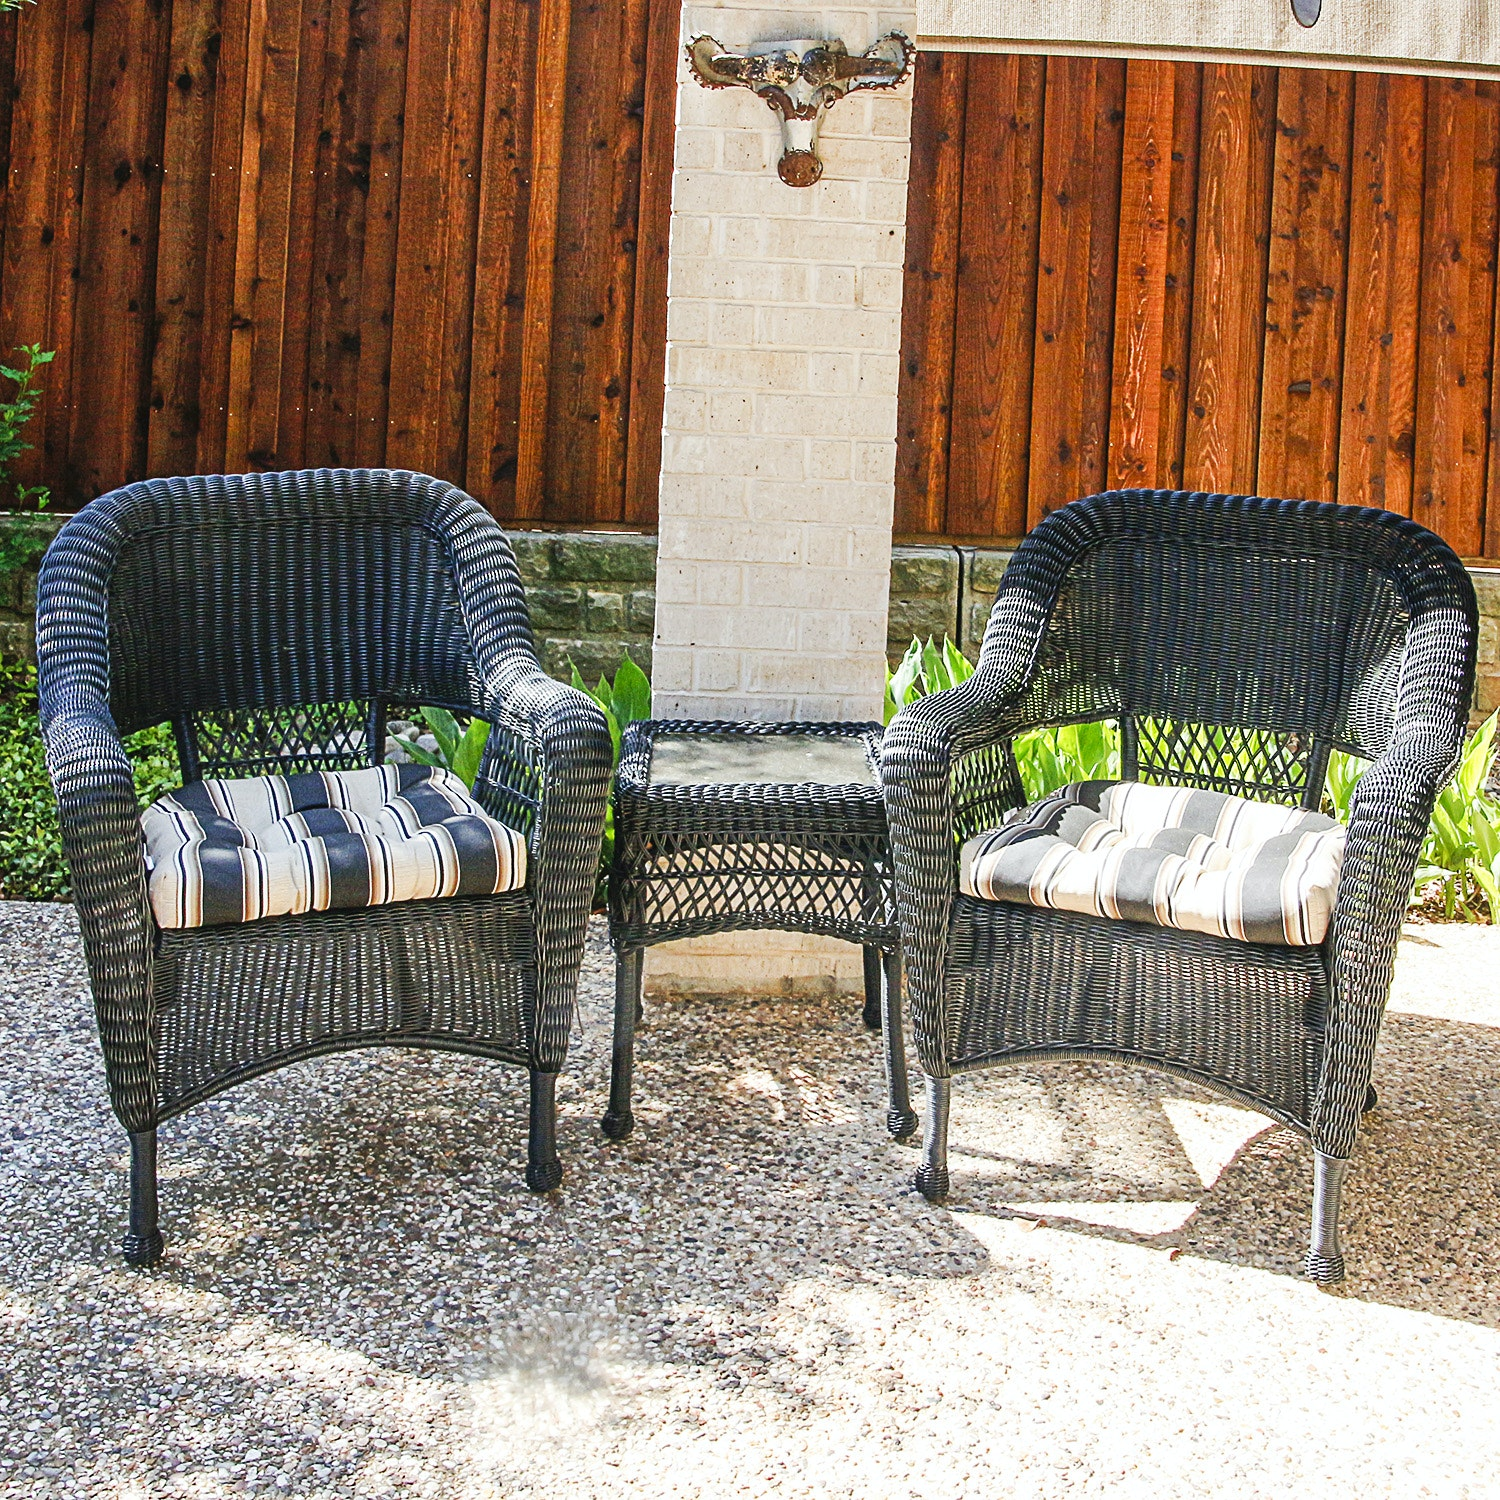 Wicker Weave Resin Patio Chairs and Matching Accent Table